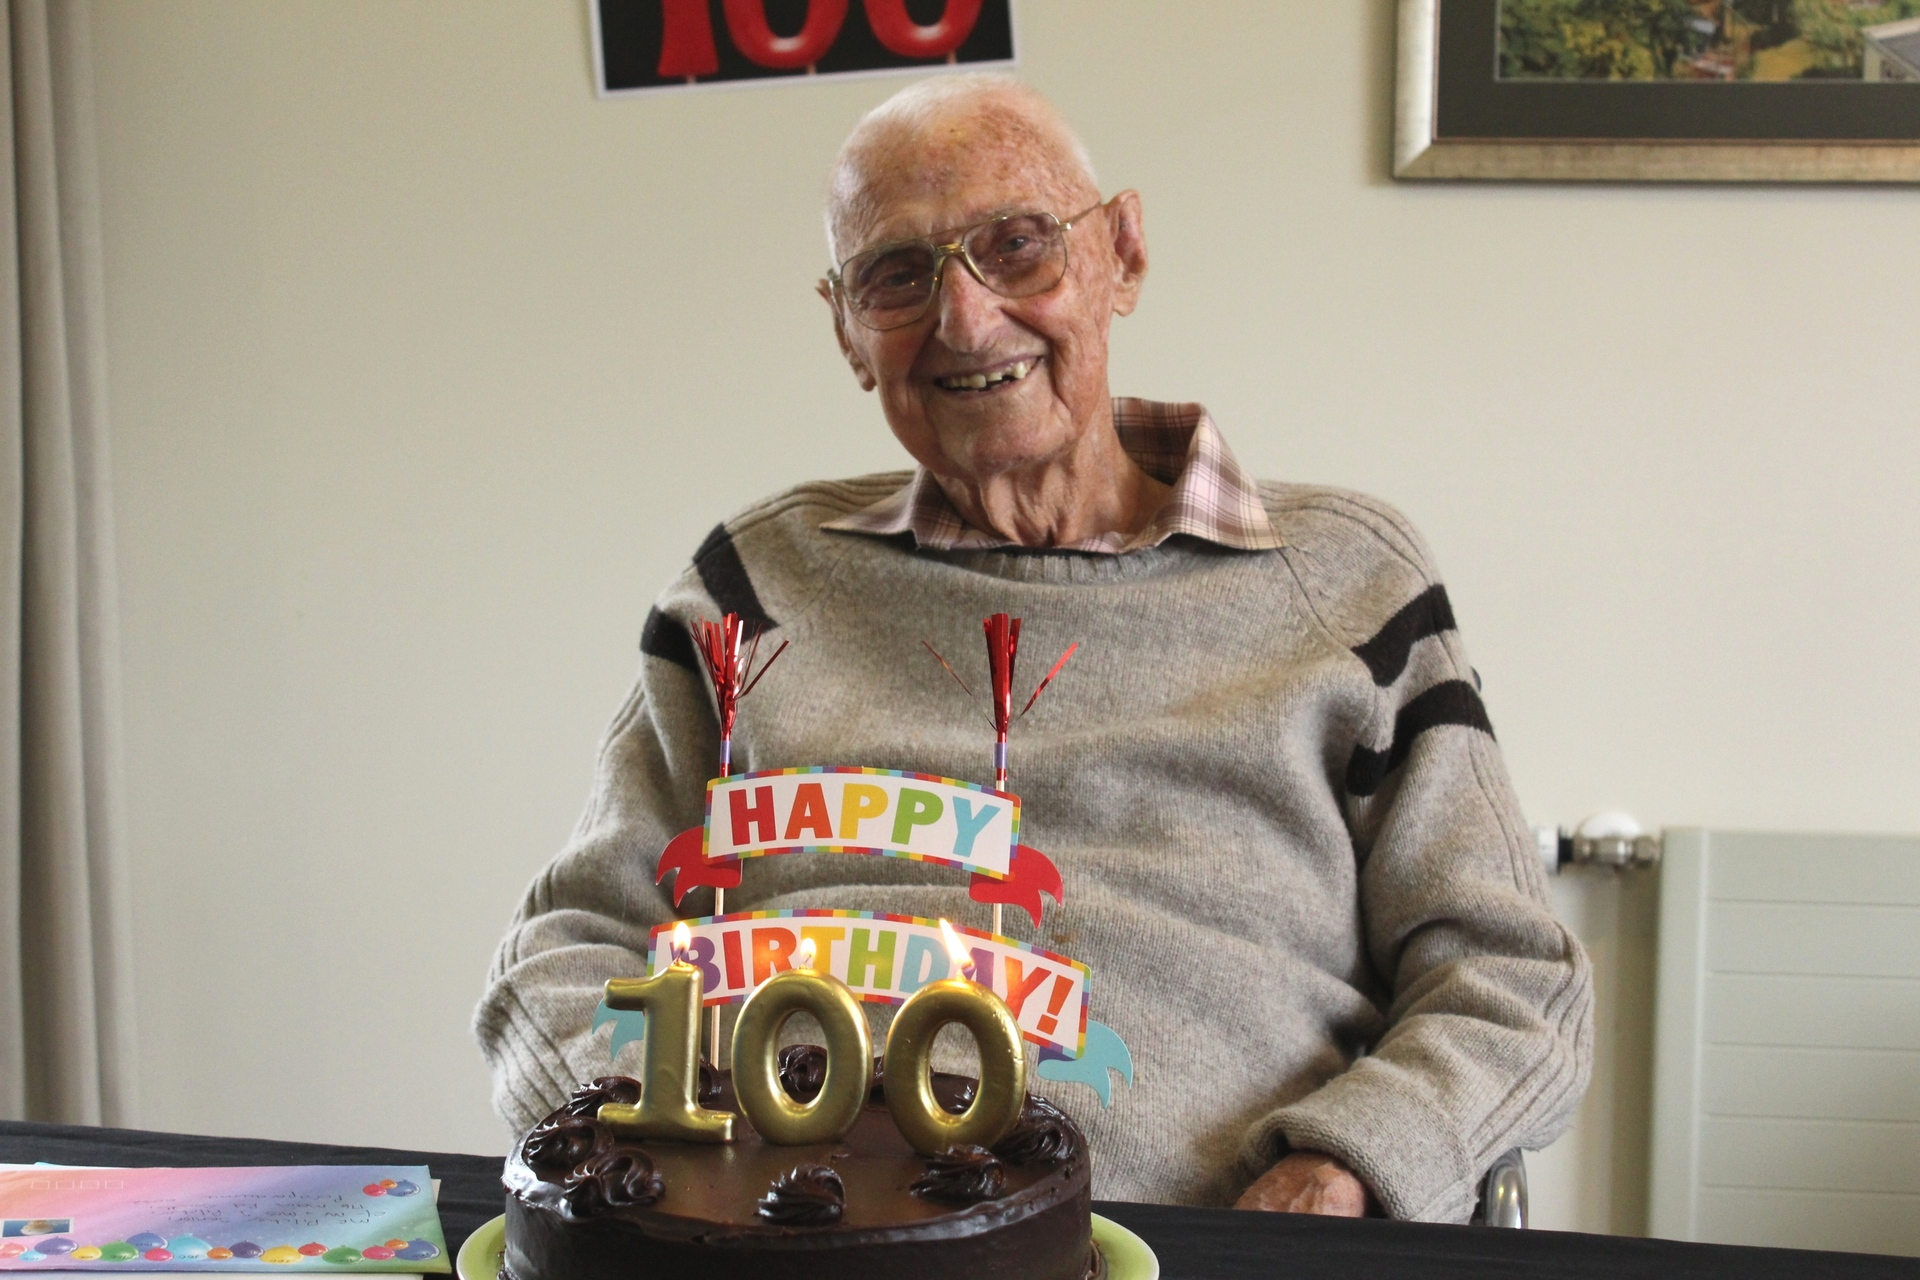 Living to 100: It's down to bacon and eggs